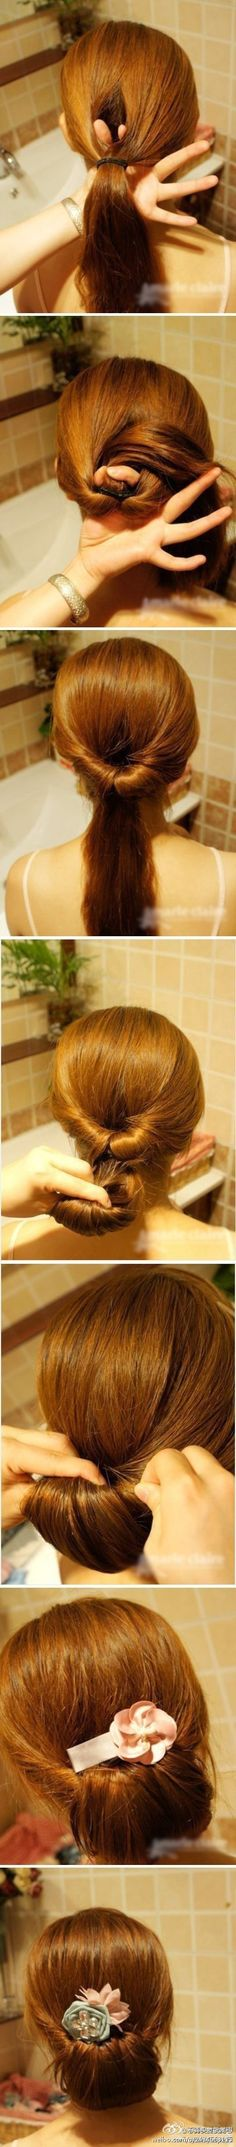 Cute ponytail inspired updo